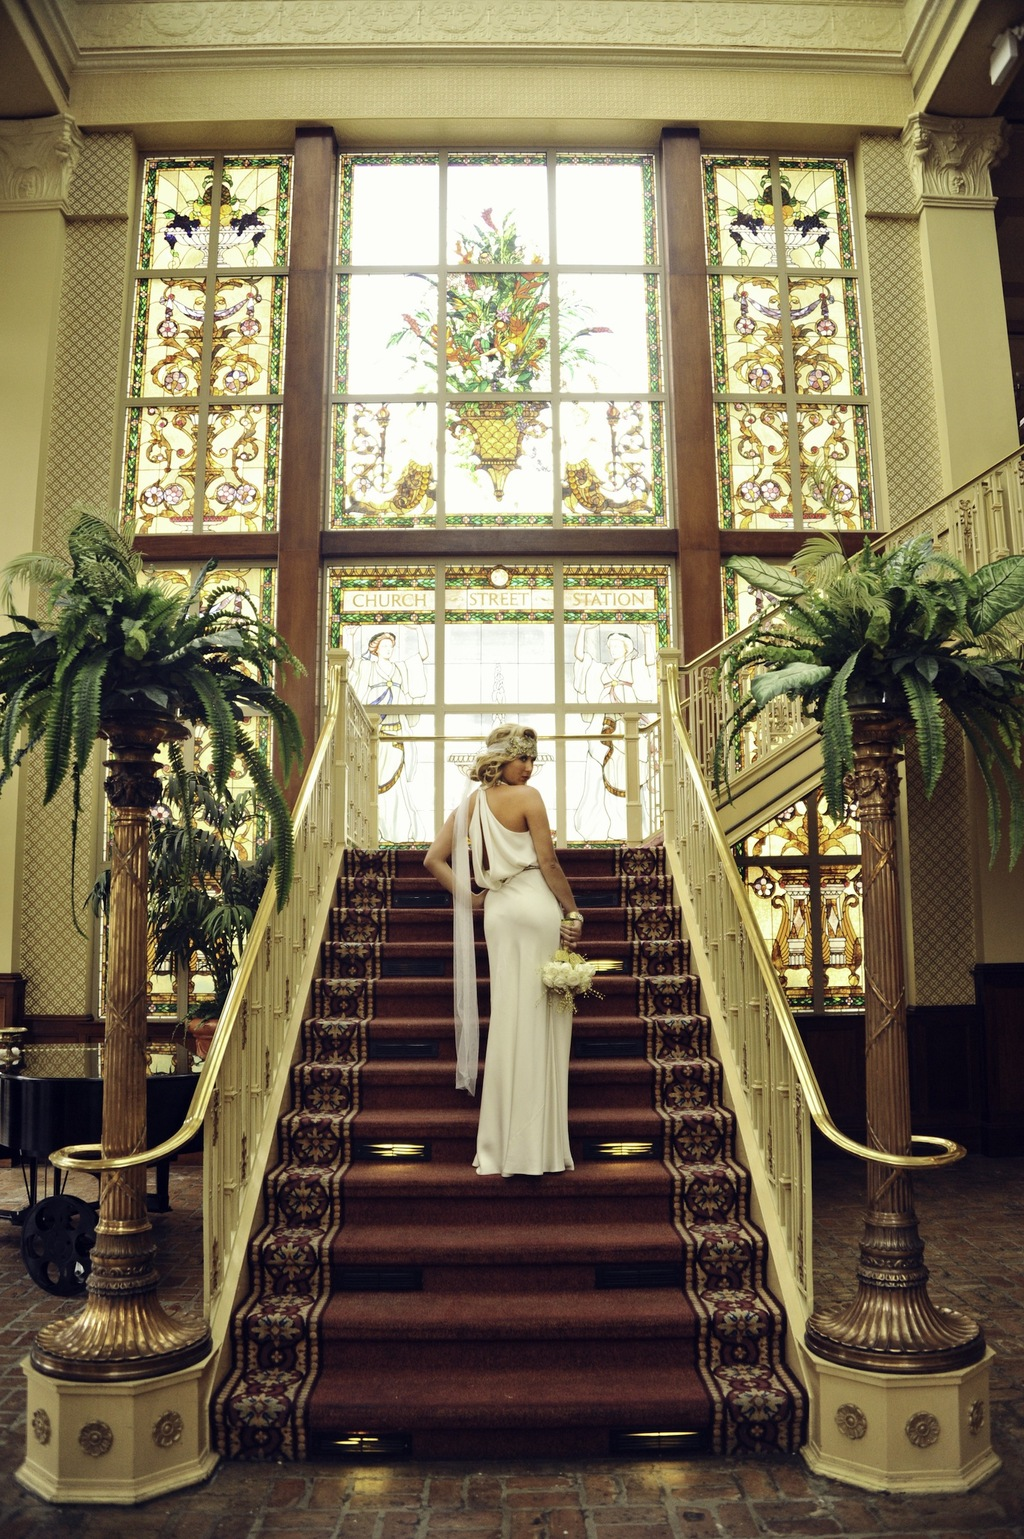 Opulent Wedding Venue with Harpist for Ceremony Music, Bride and Groom